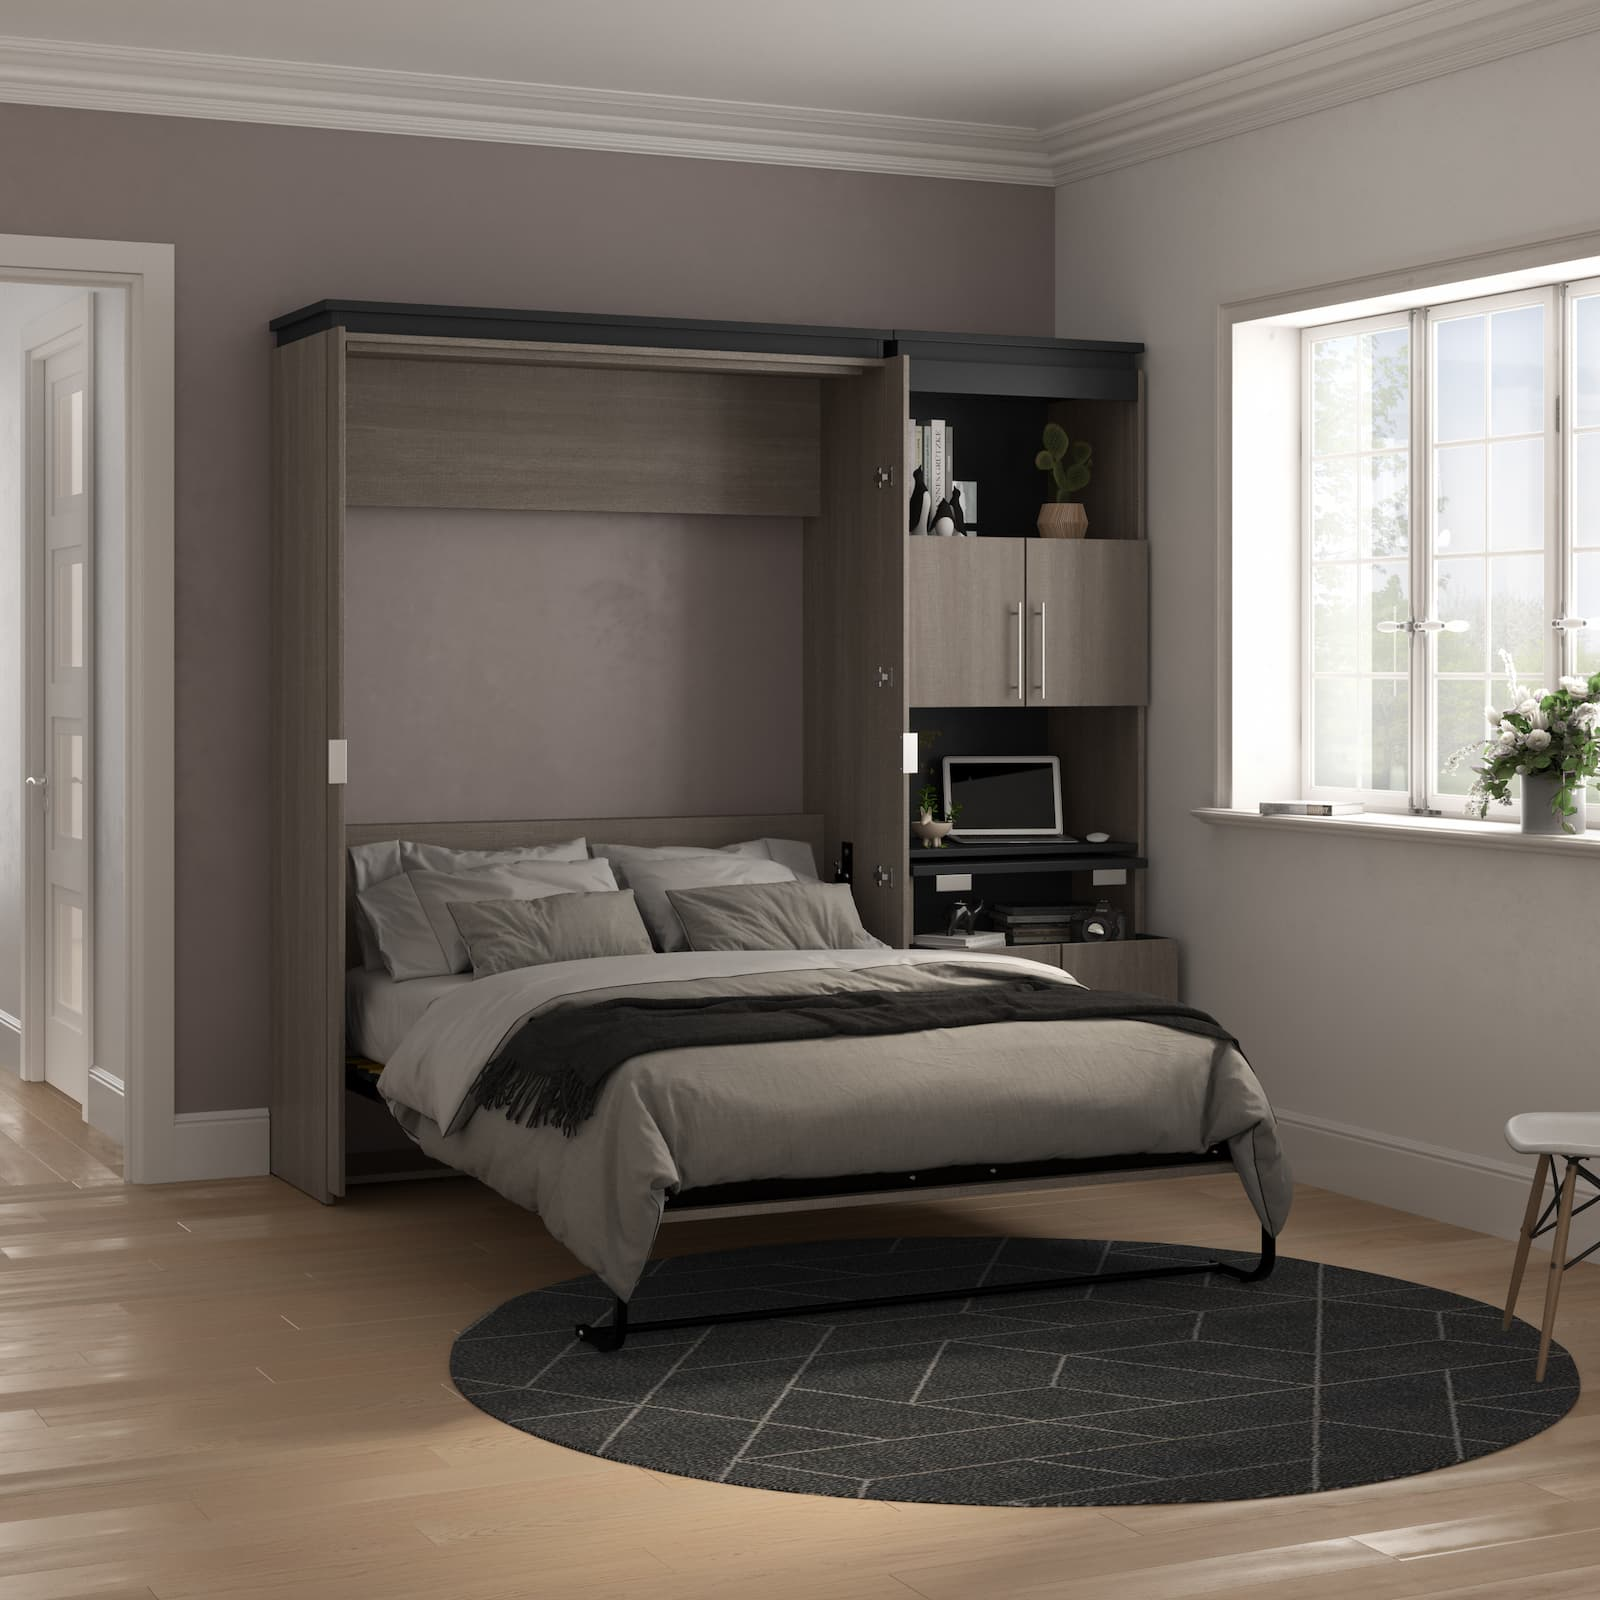 dark murphy bed with side desk in shelving units and dark bedding